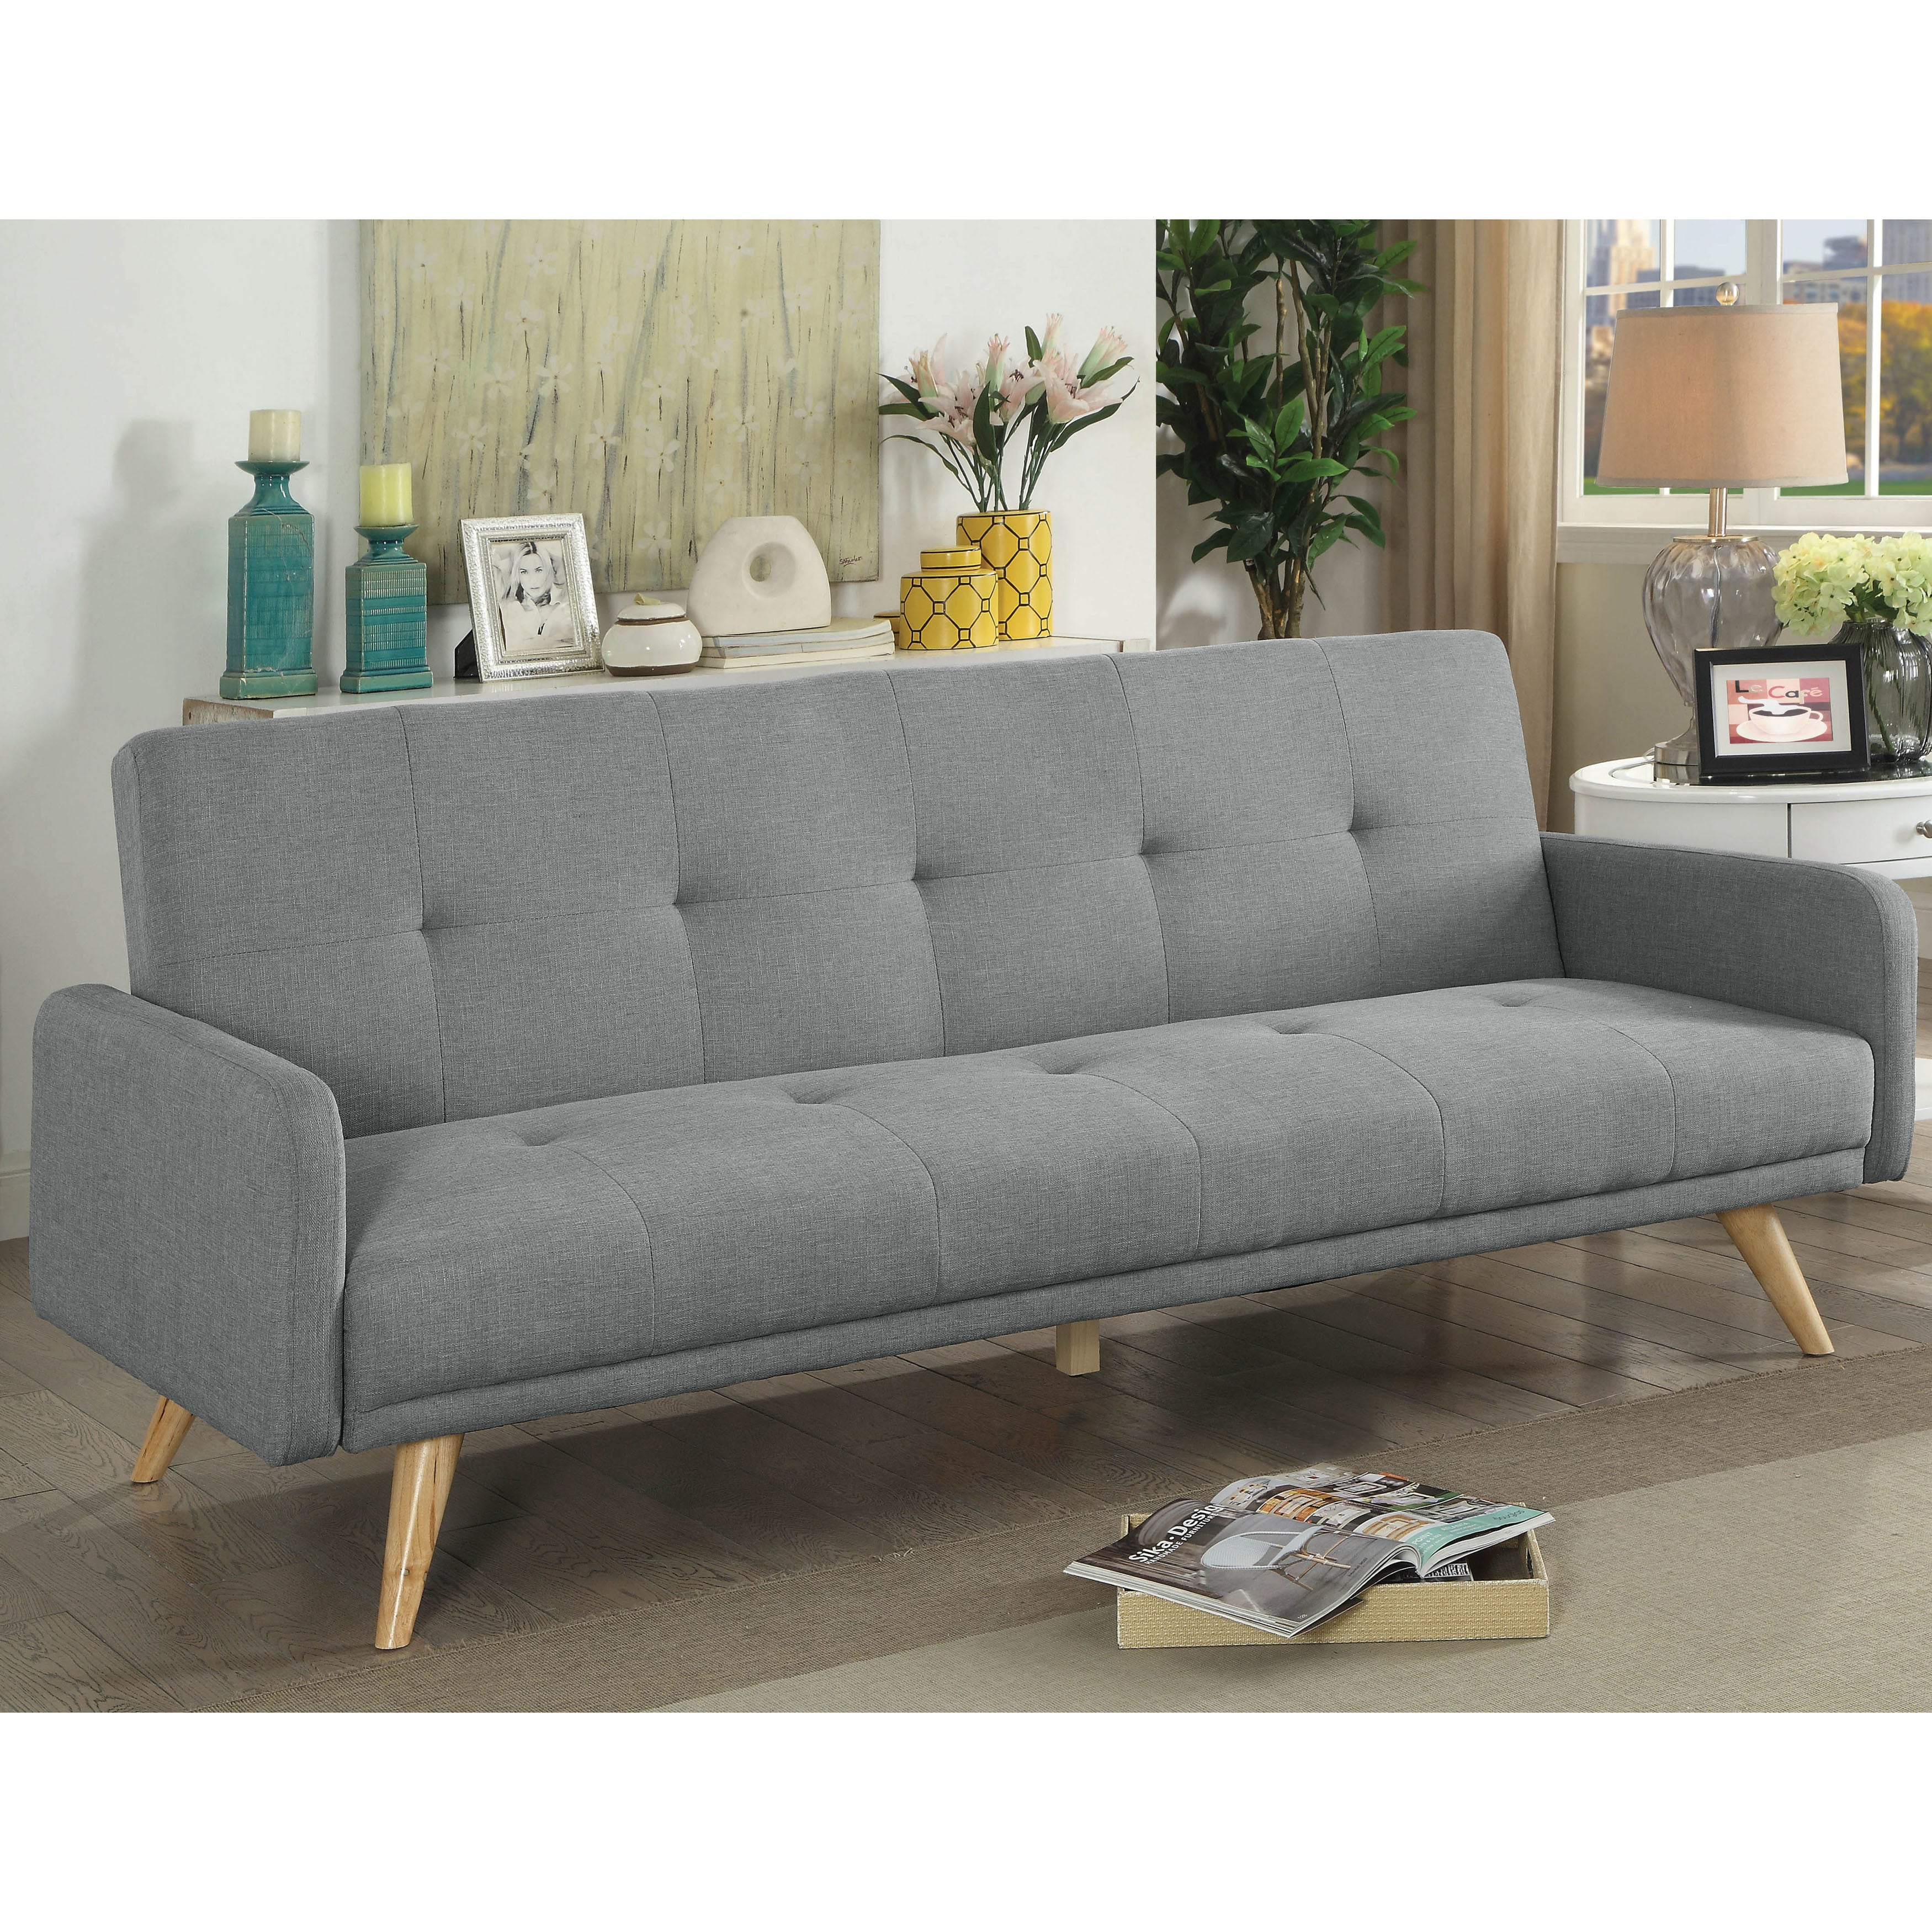 Shop furniture of america millel grey mid century modern tufted futon sofa free shipping today overstock com 18657902